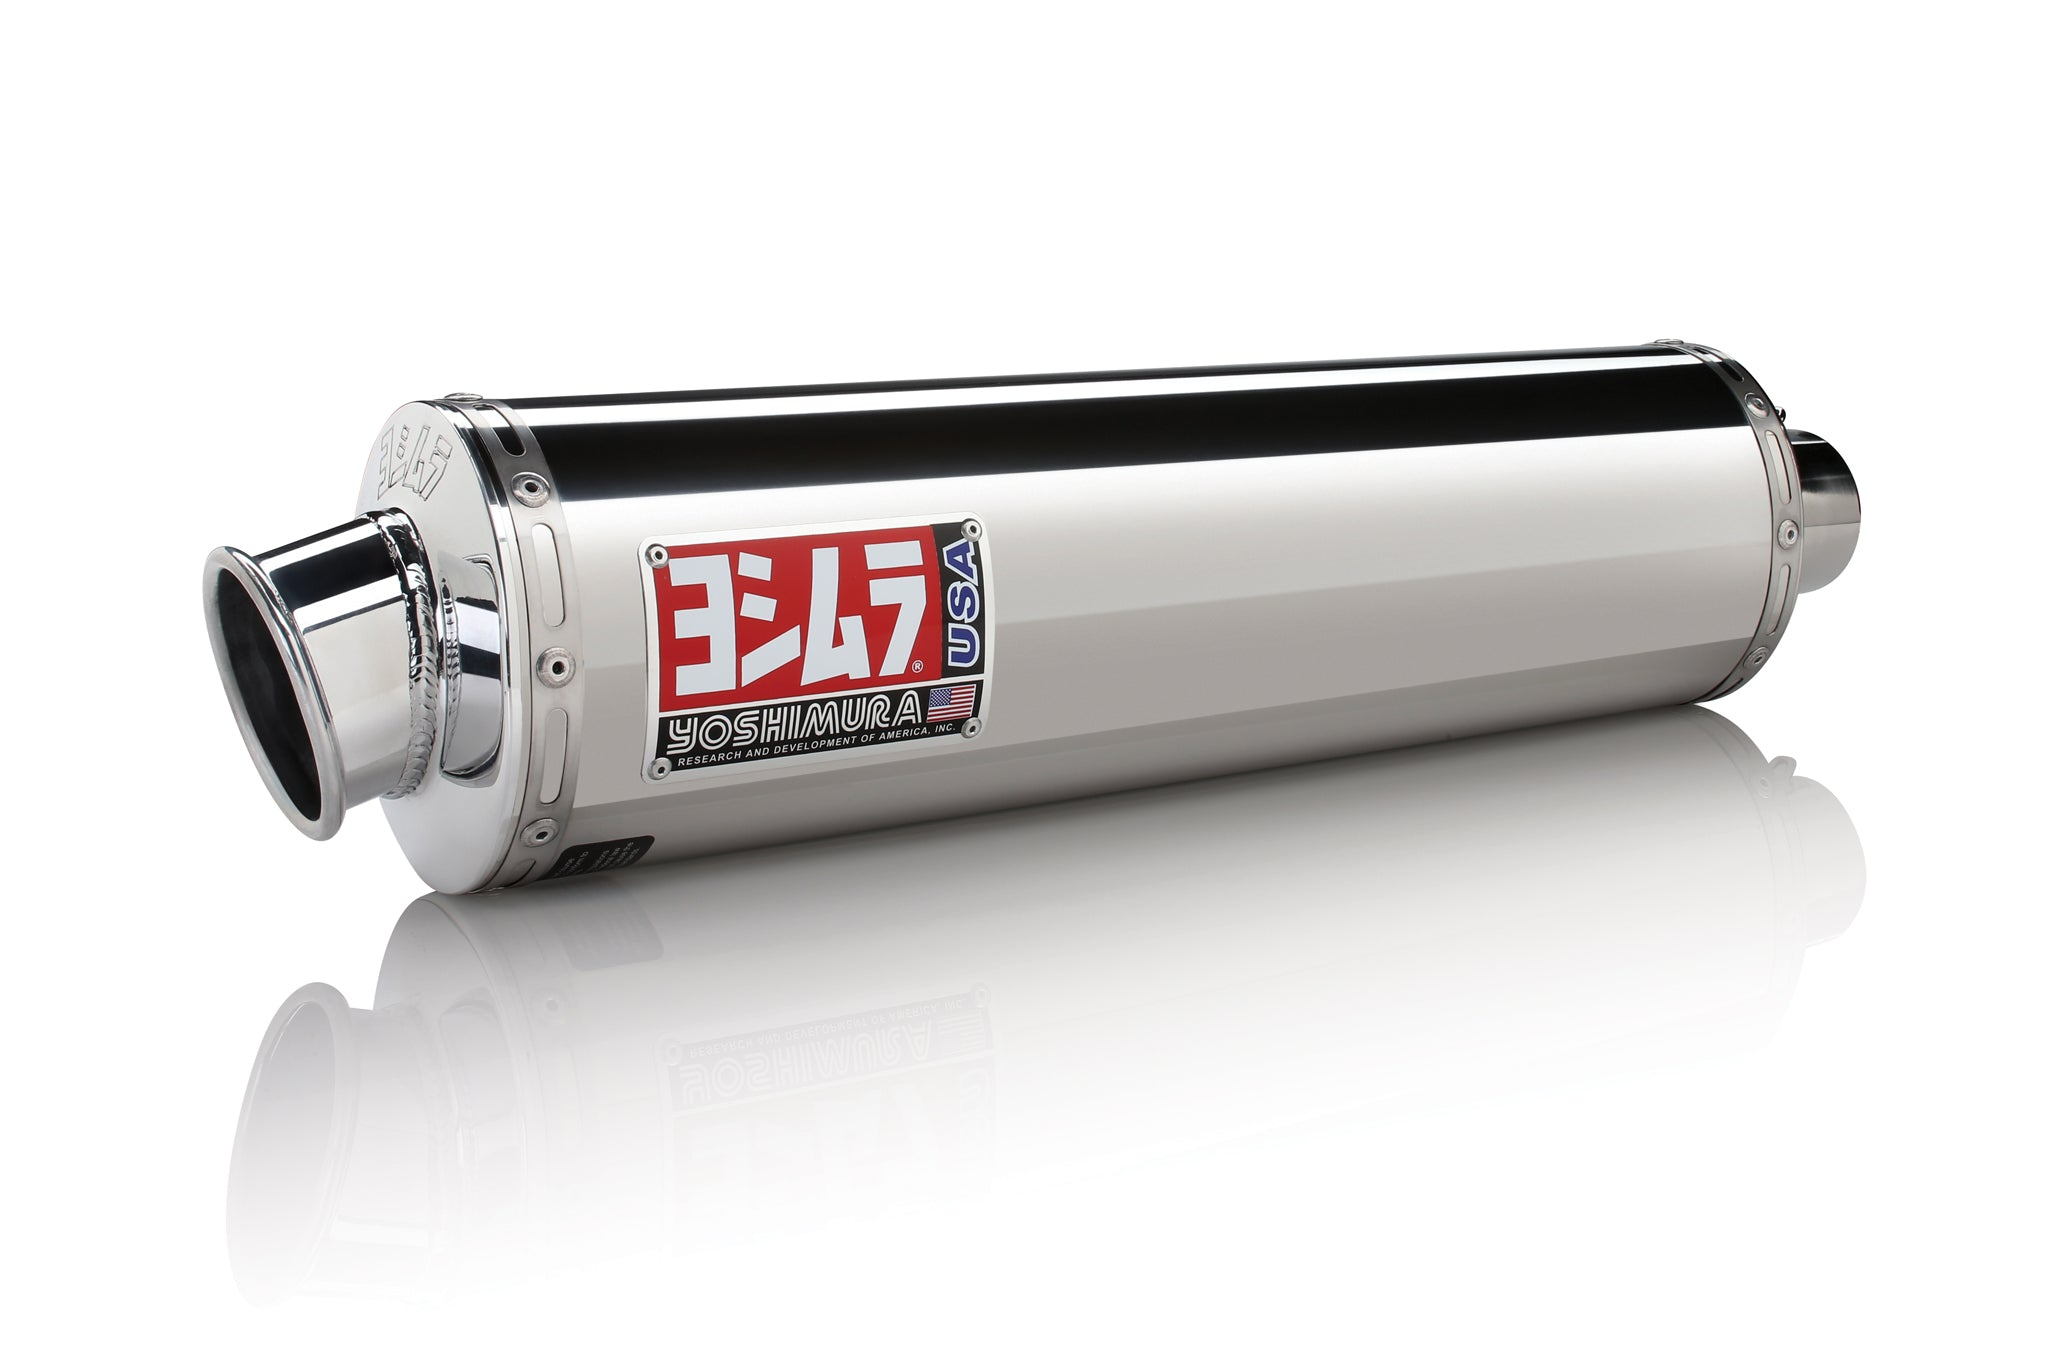 Suzuki GSF1250 Bandit Exhaust Stainless Steel Studs and Flange Nuts GSX1250fa